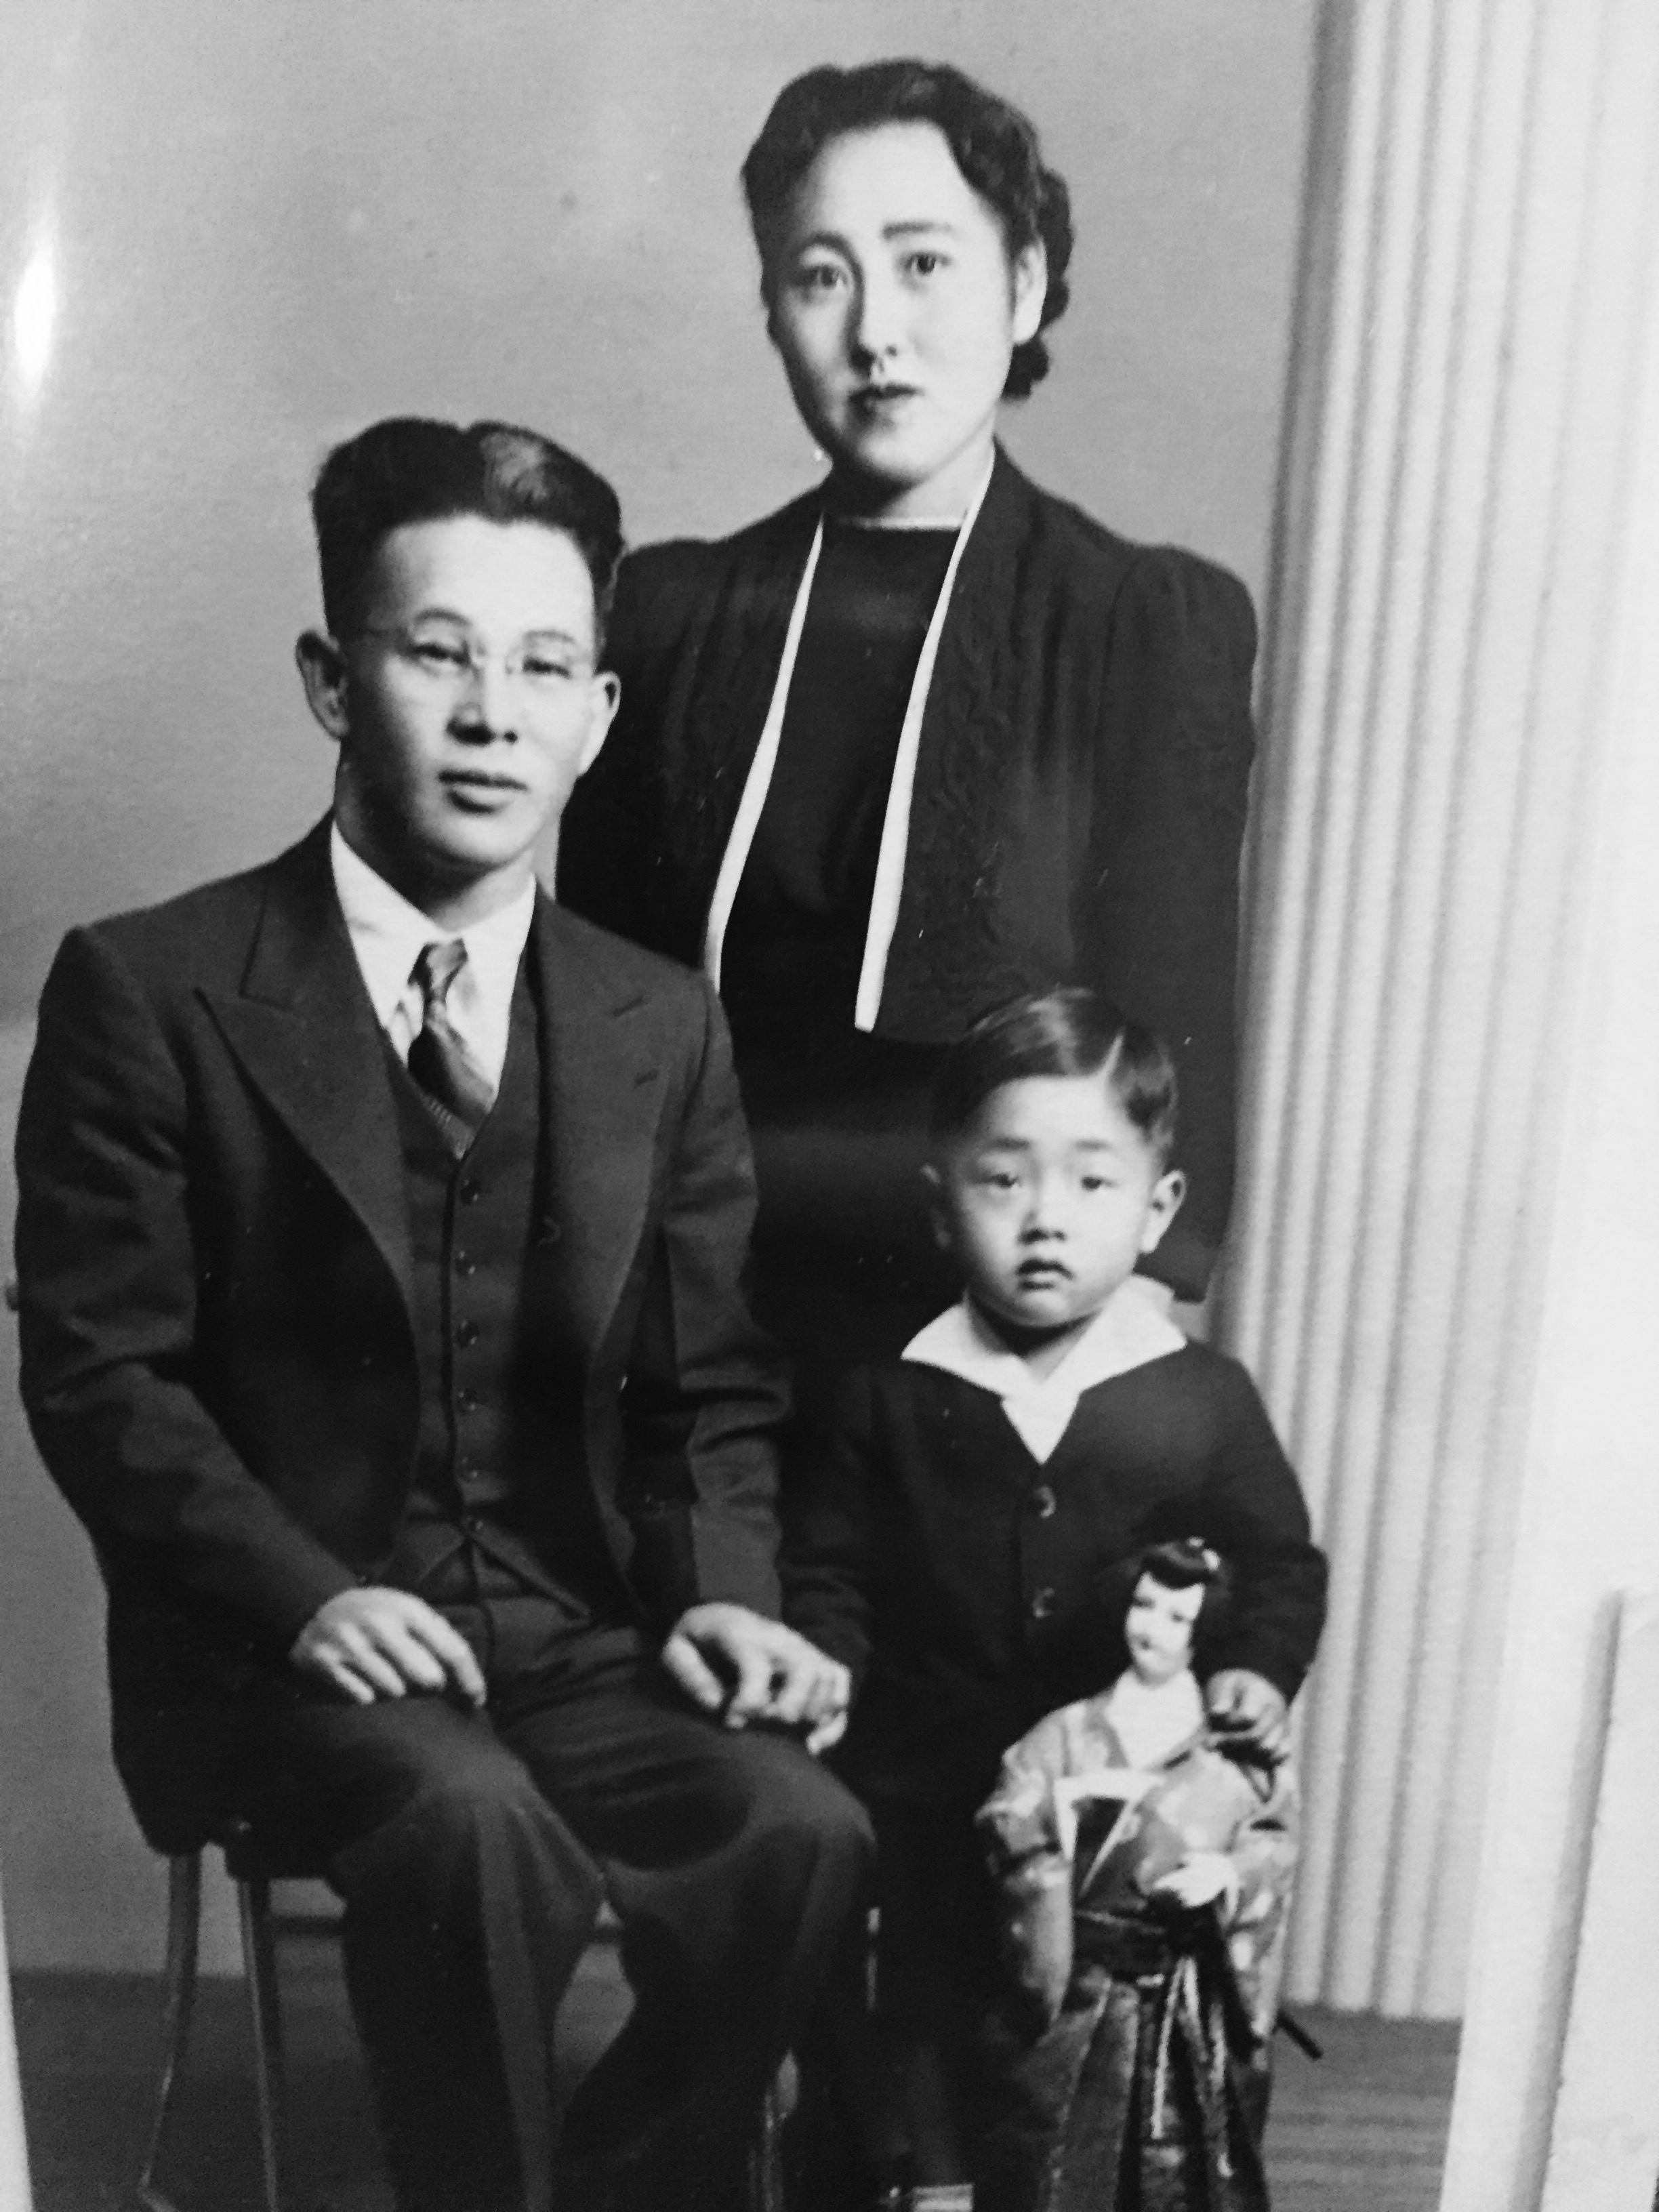 Howard (age 3) and his parents, Masaru and Yukiye. Howard's mother was deeply affected by what she saw happening in the camps: A lack of decency and dignity for people who once lived autonomously. Howard recalls that his family visited the camp in Utah, Topaz, and were invited to eat a meal in the mess hall. His mother broke down and cried when she saw people standing in line with trays to eat.